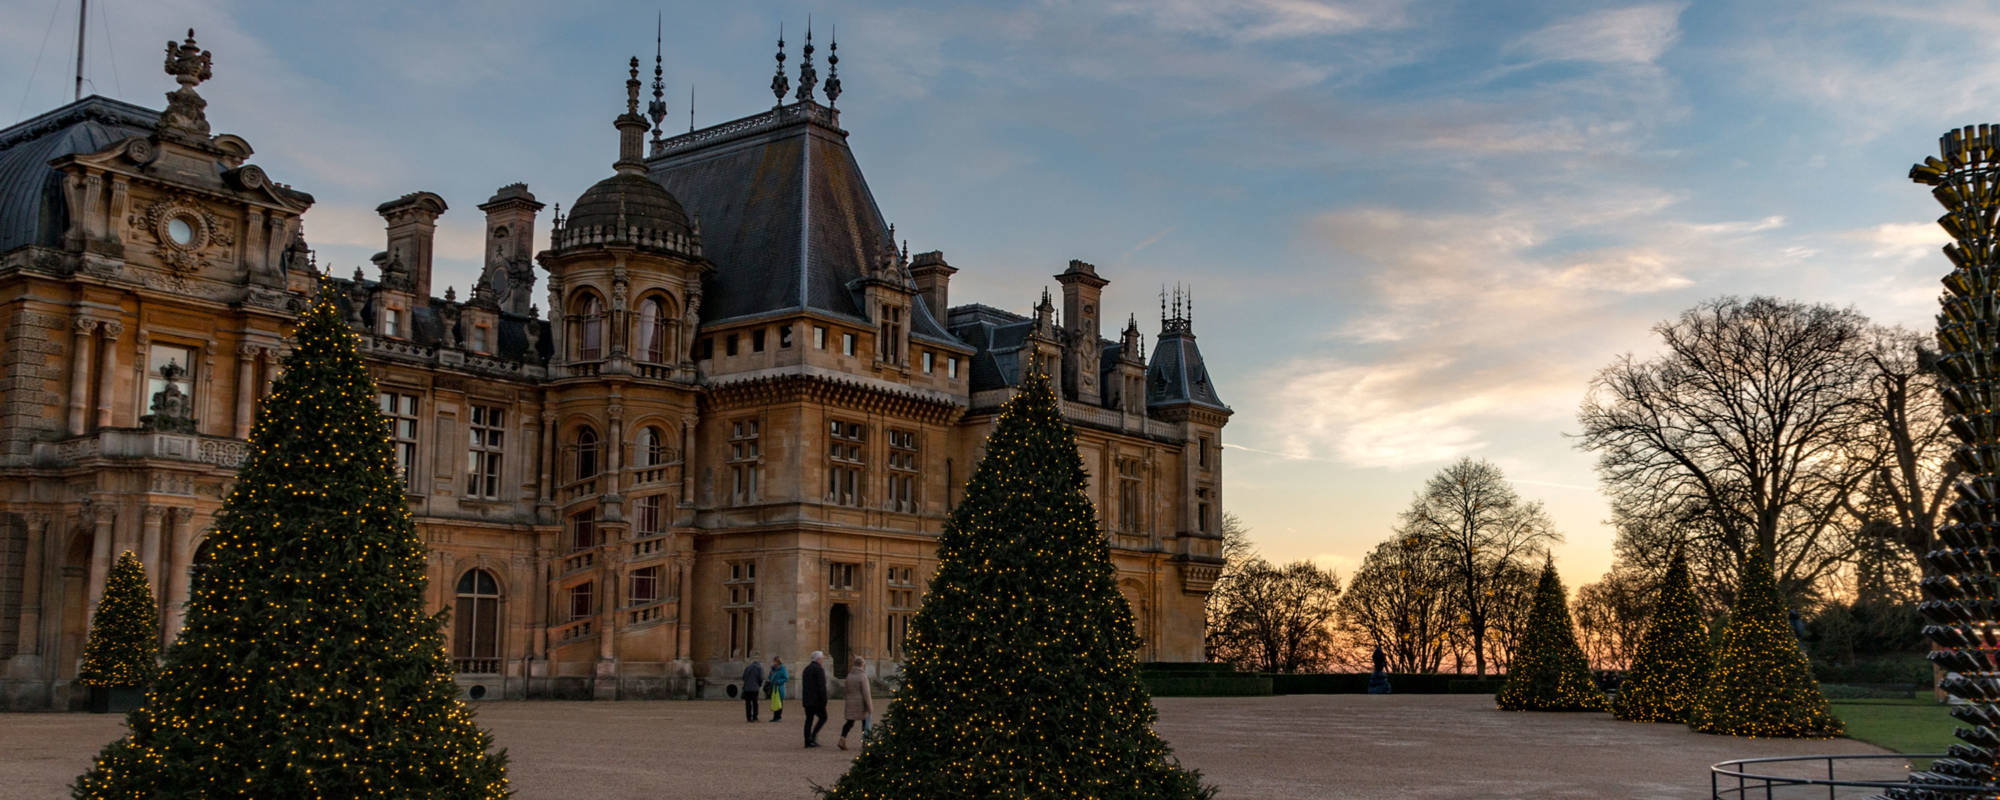 The Manor and Christmas trees